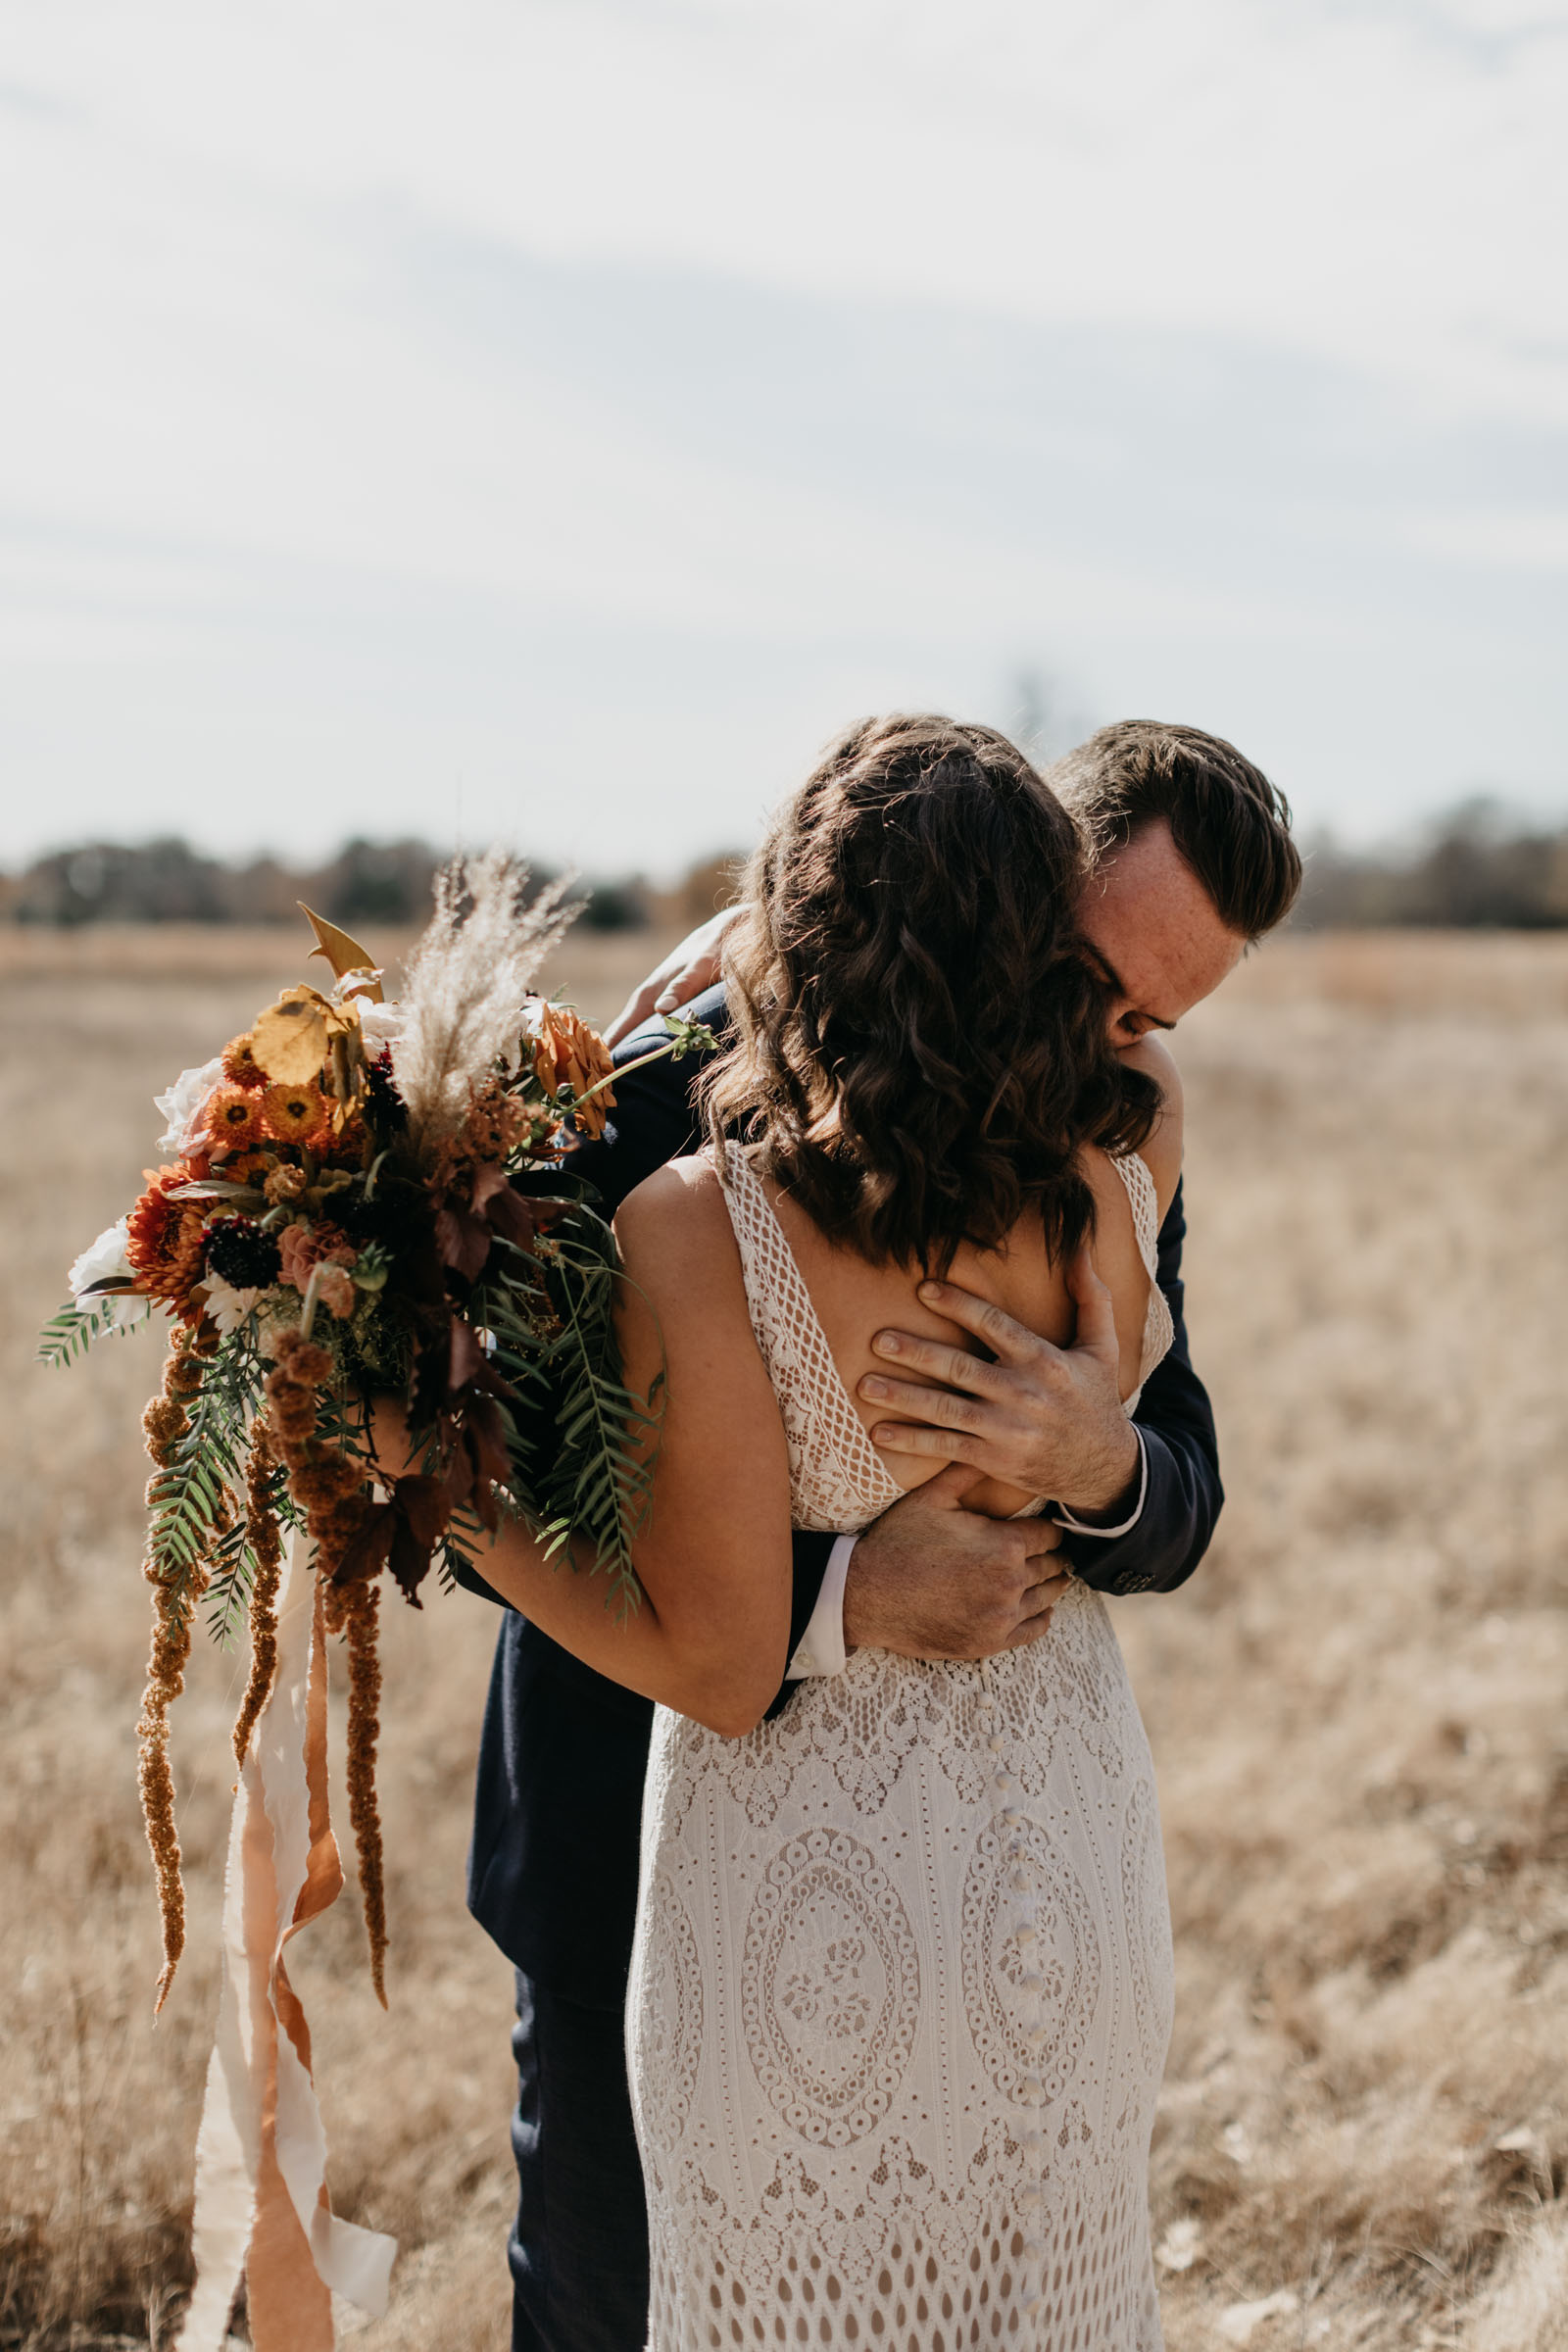 Bride wearing lace dress holding her boho wedding bouquet and hugging her groom before their wedding ceremony